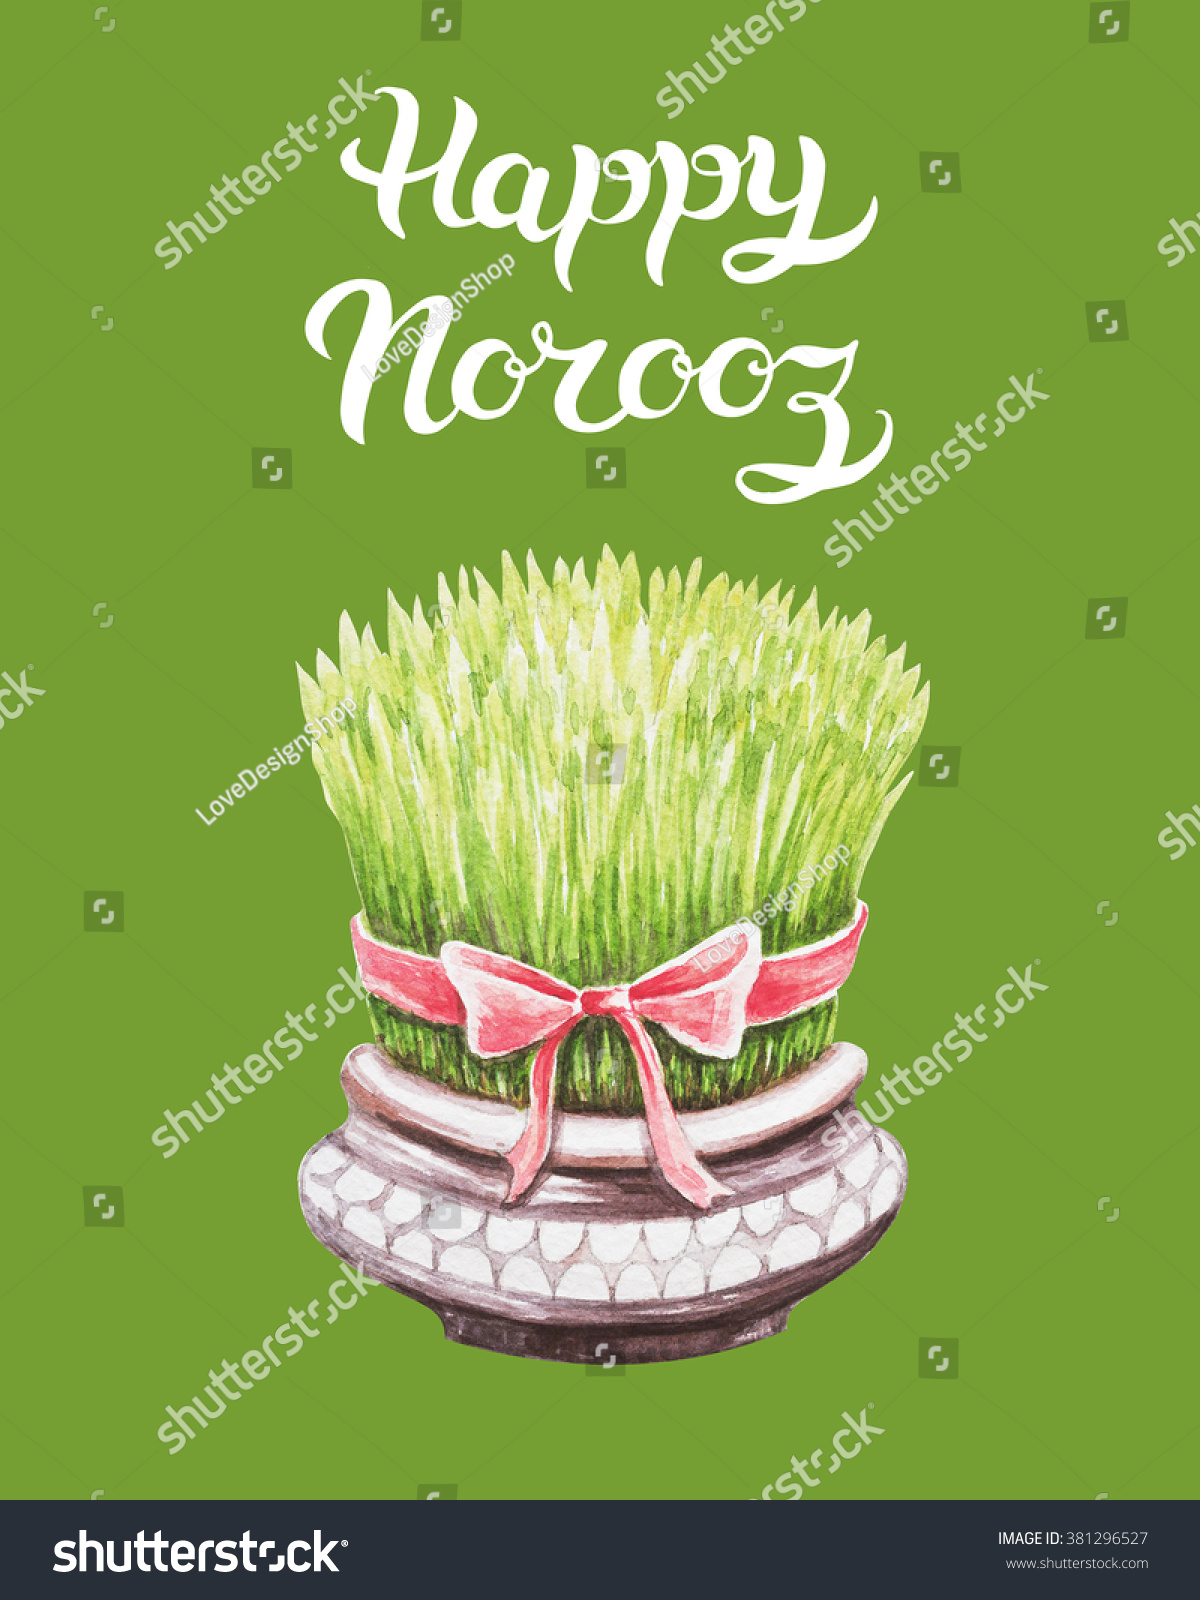 Royalty free stock illustration of hand drawn greeting card title hand drawn greeting card with title happy norooz word norooz mean m4hsunfo